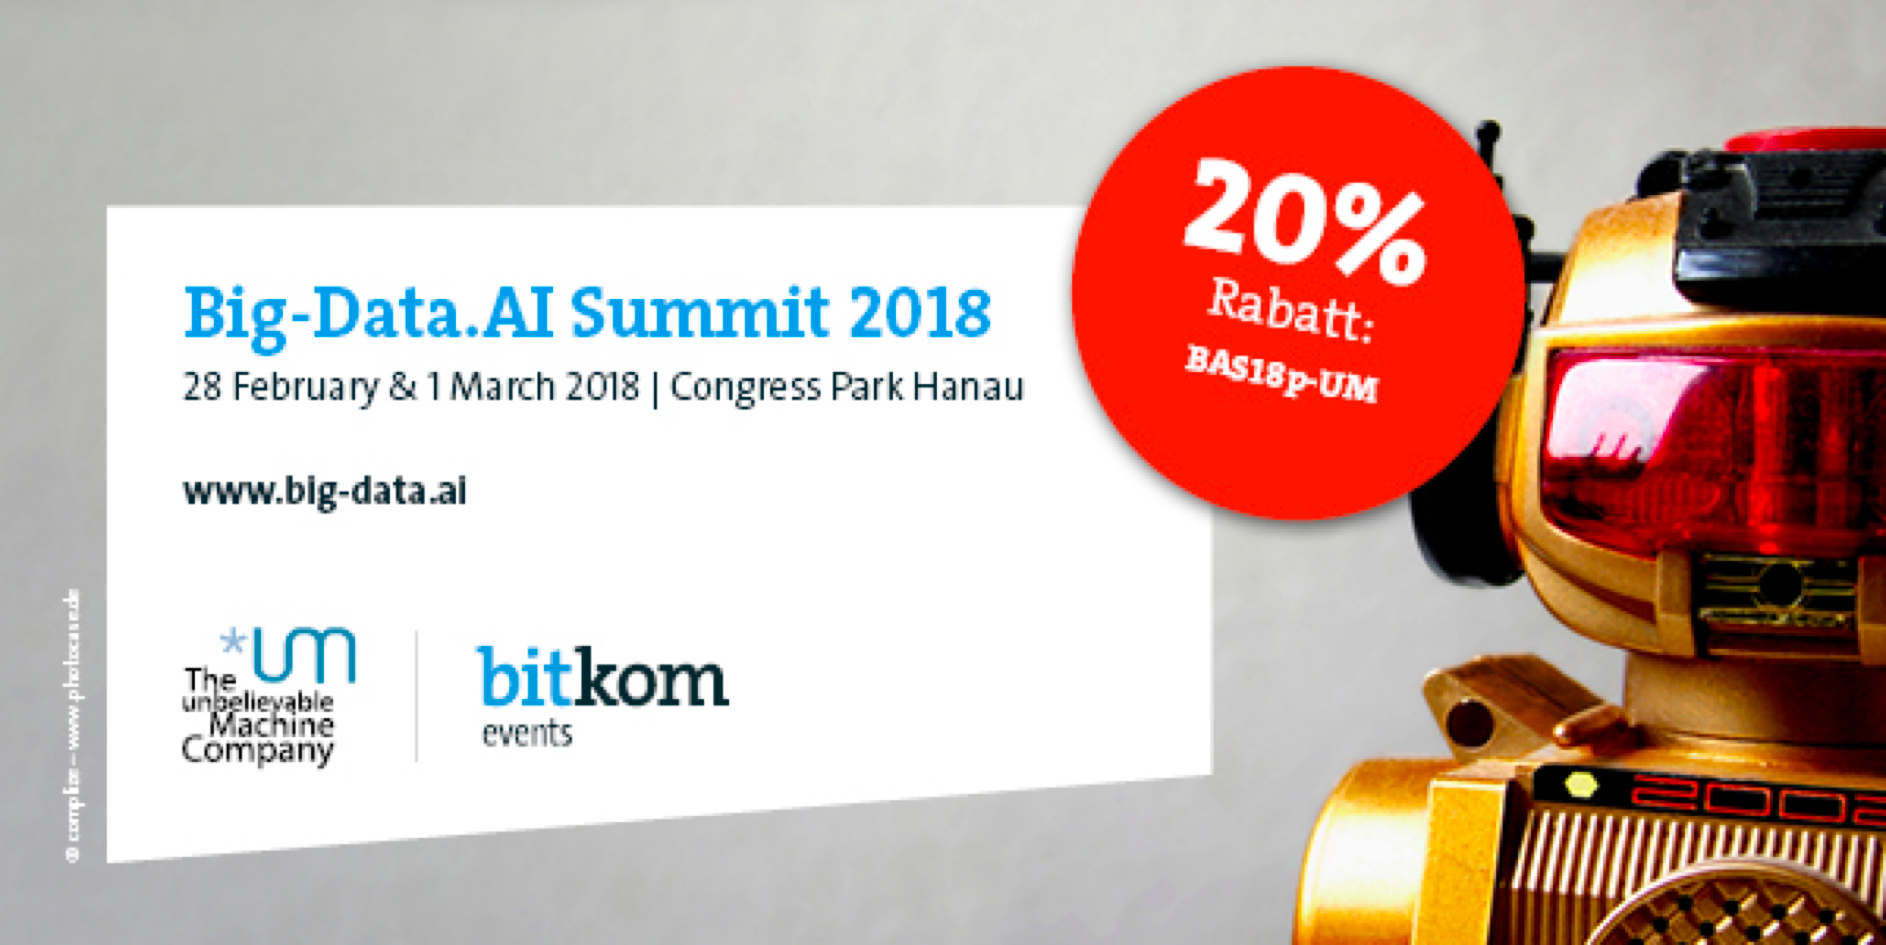 Big-Data.AI Summit // 28. Februar & 1. März, Hanau